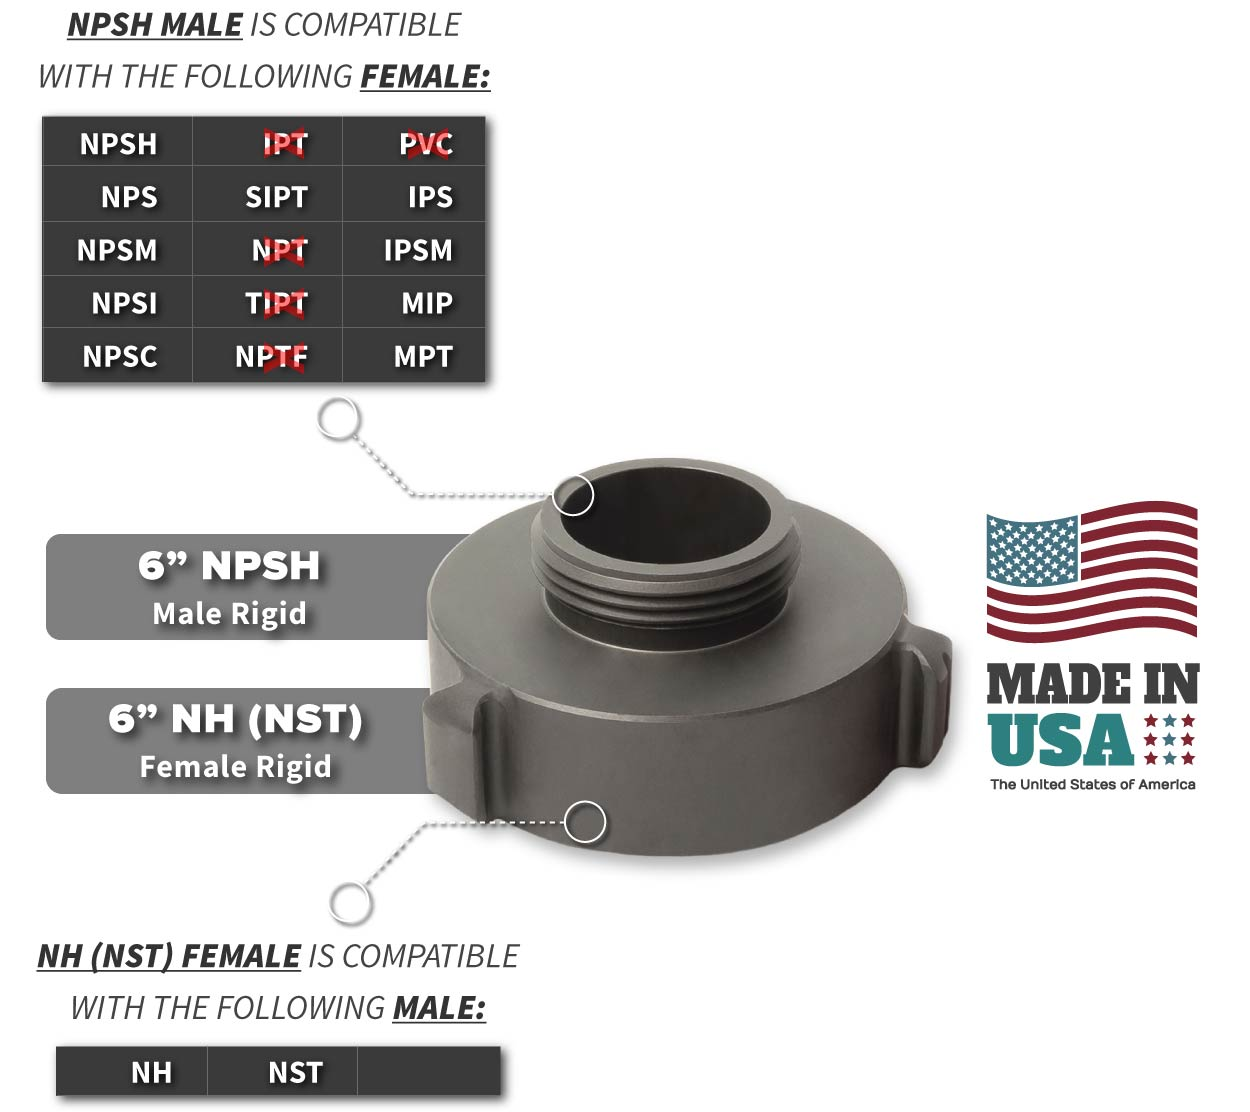 6 Inch NH-NST Female x 6 Inch NPSH Male Compatibility Thread Chart